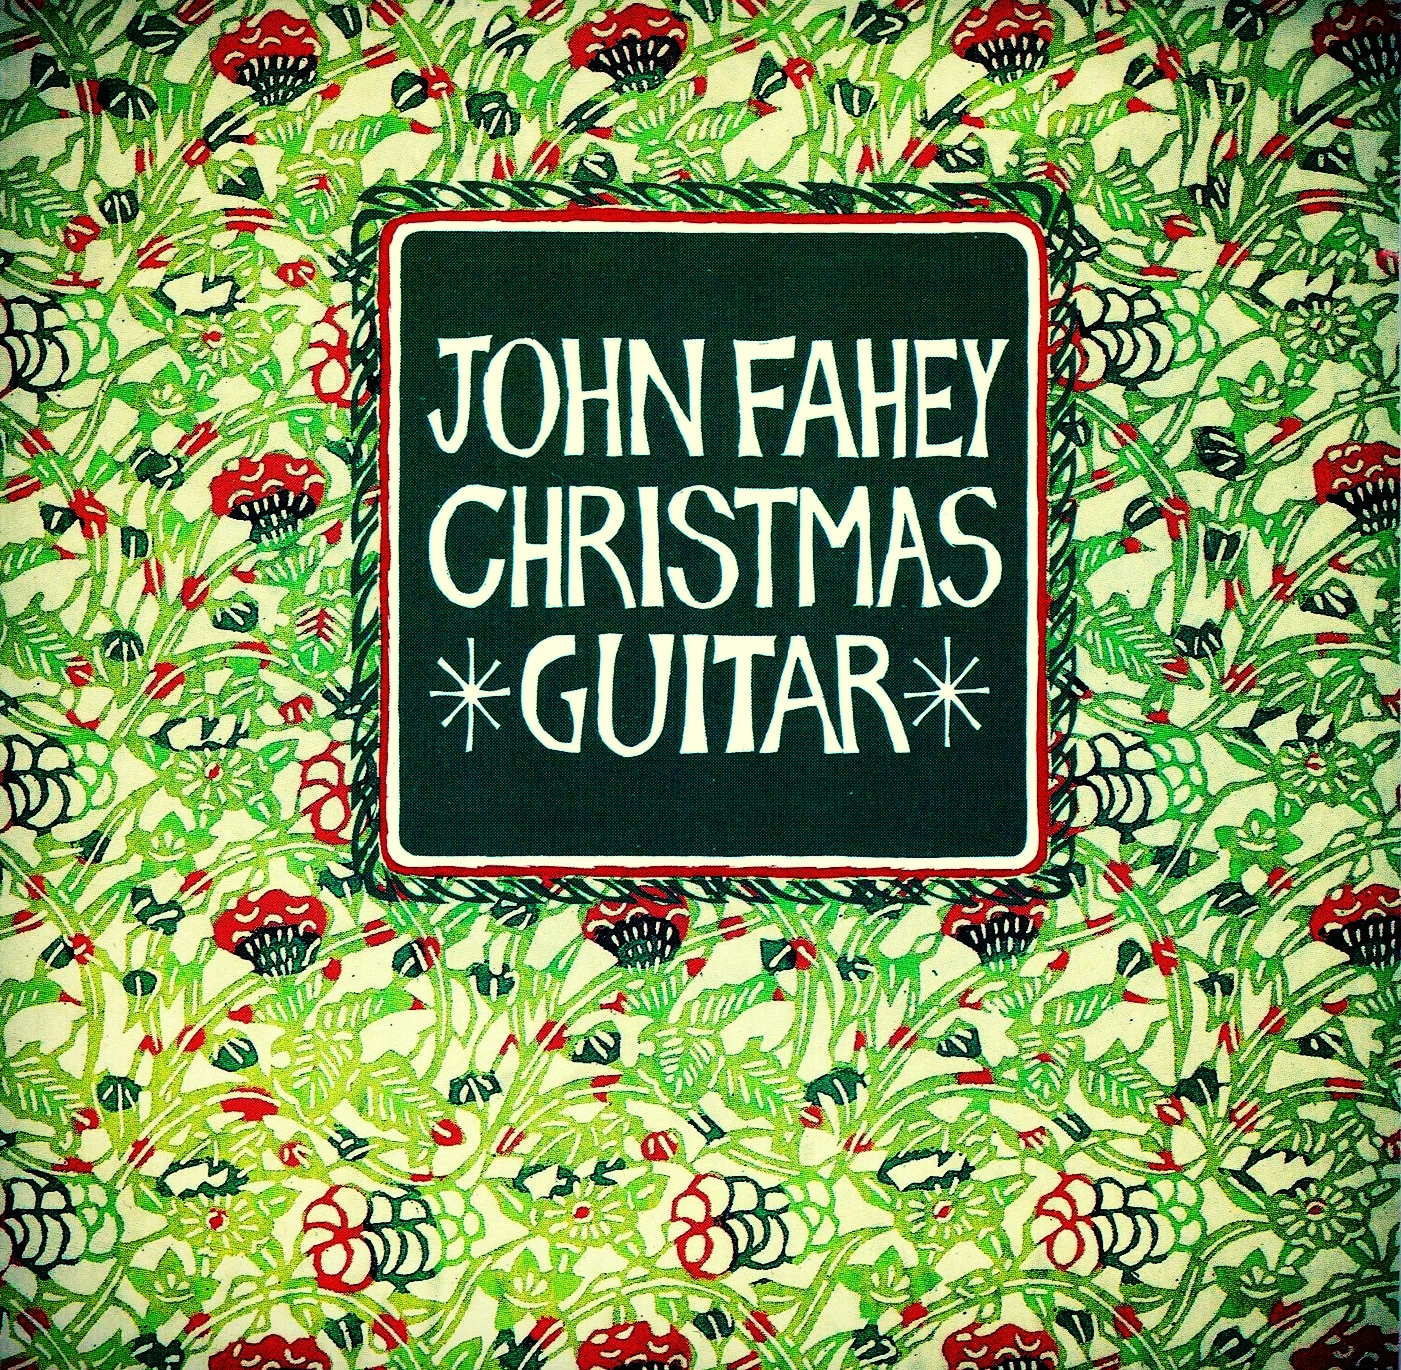 John Fahey, Christmas Guitar Vol. 1